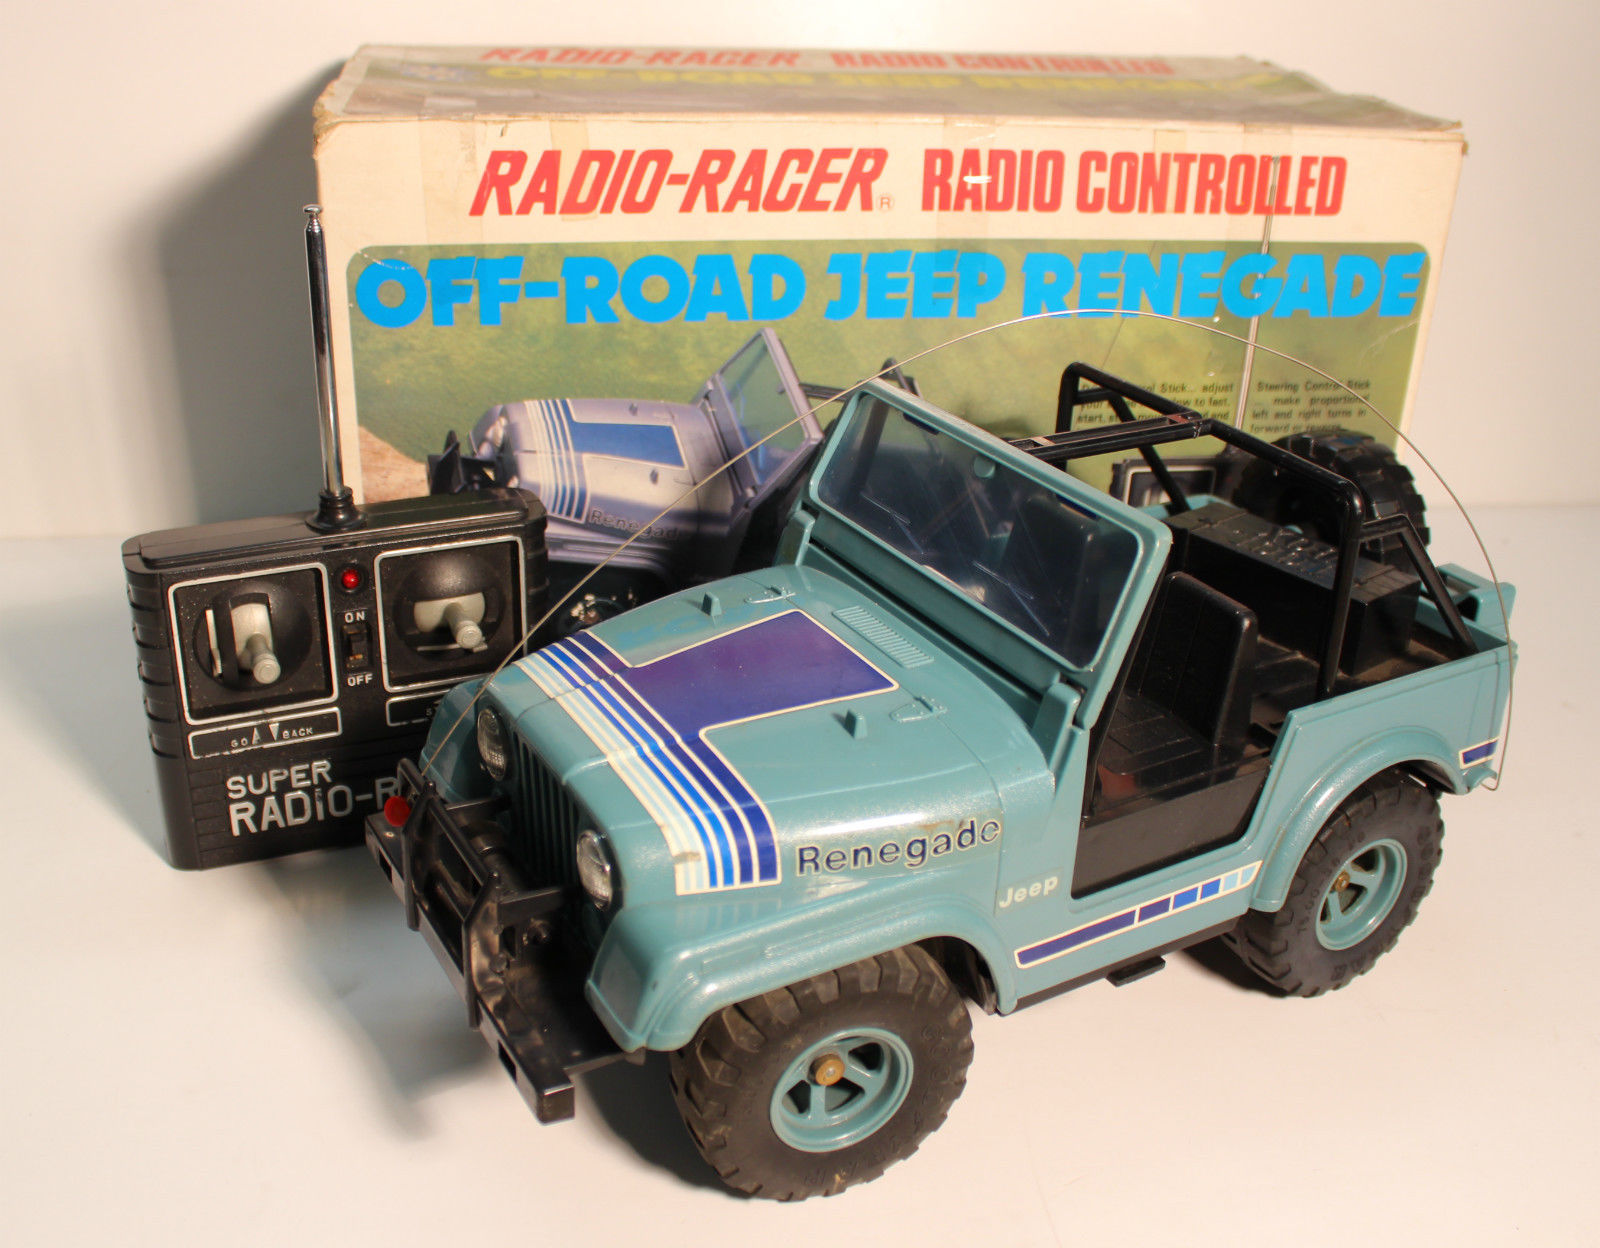 Radio Shack Toys For Boys : Tandy radio shack jeep renegade r c toy memories